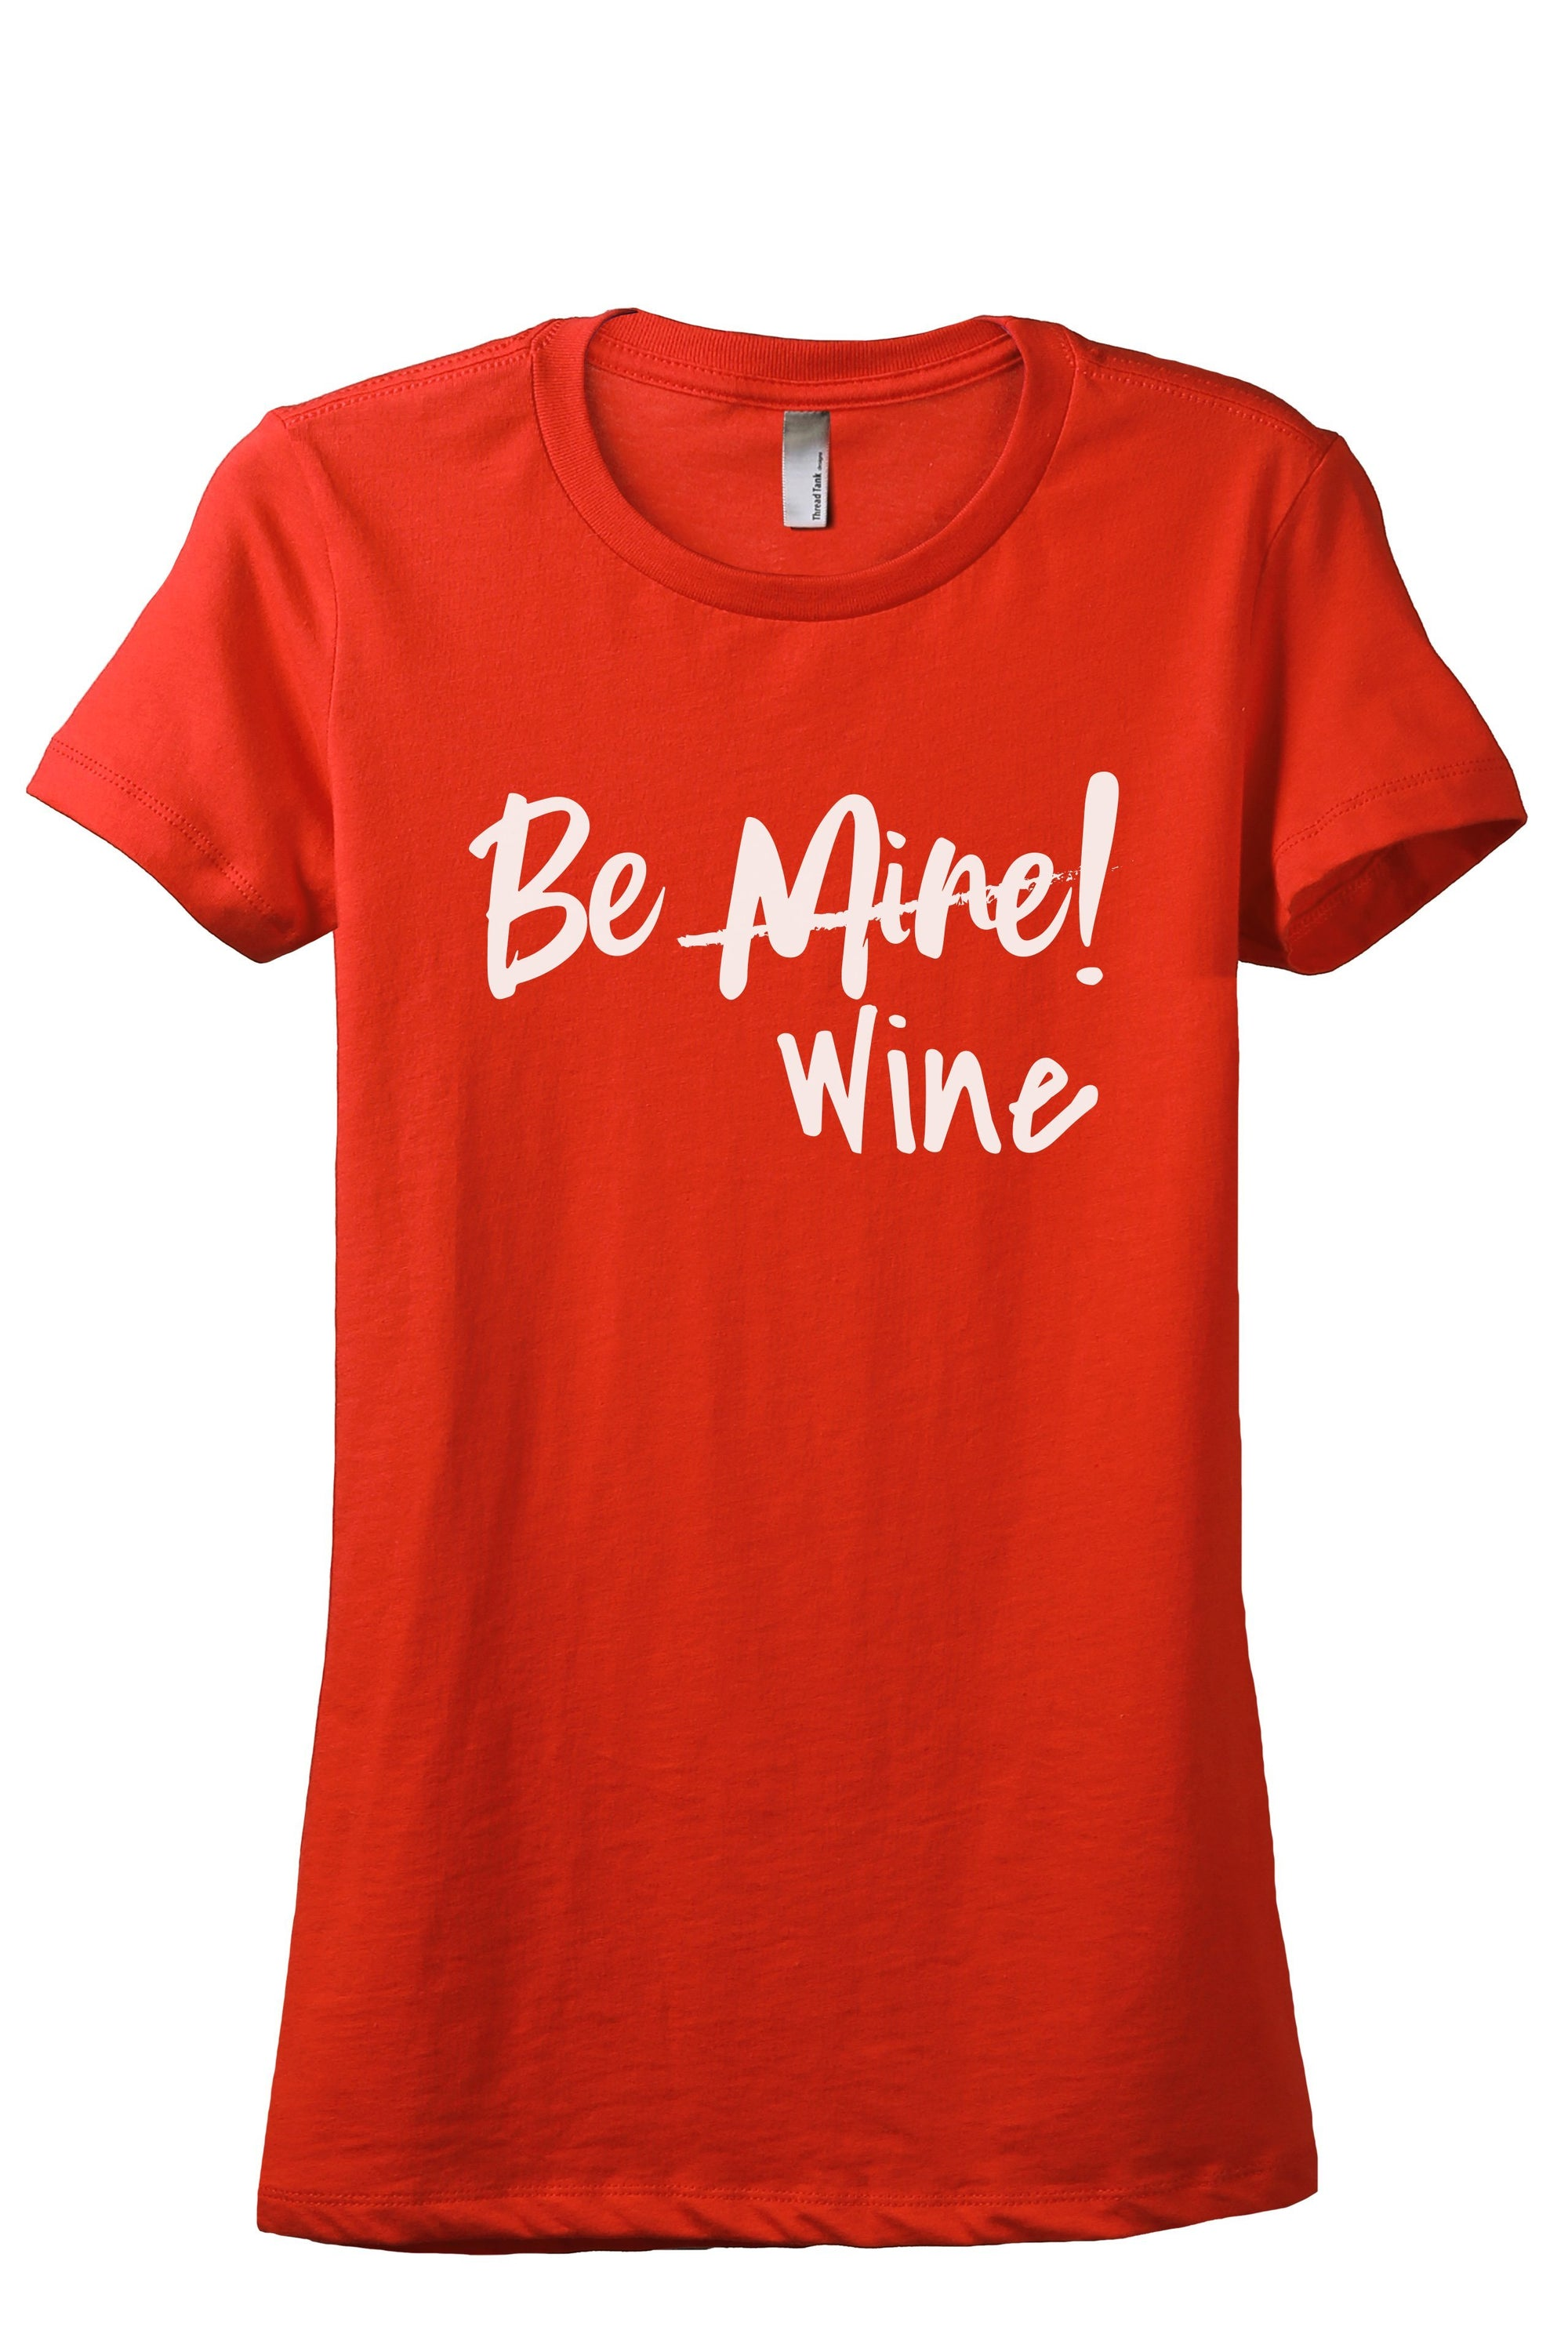 Be Mine Wine Women's Relaxed Crewneck T-Shirt Top Tee Poppy Grey